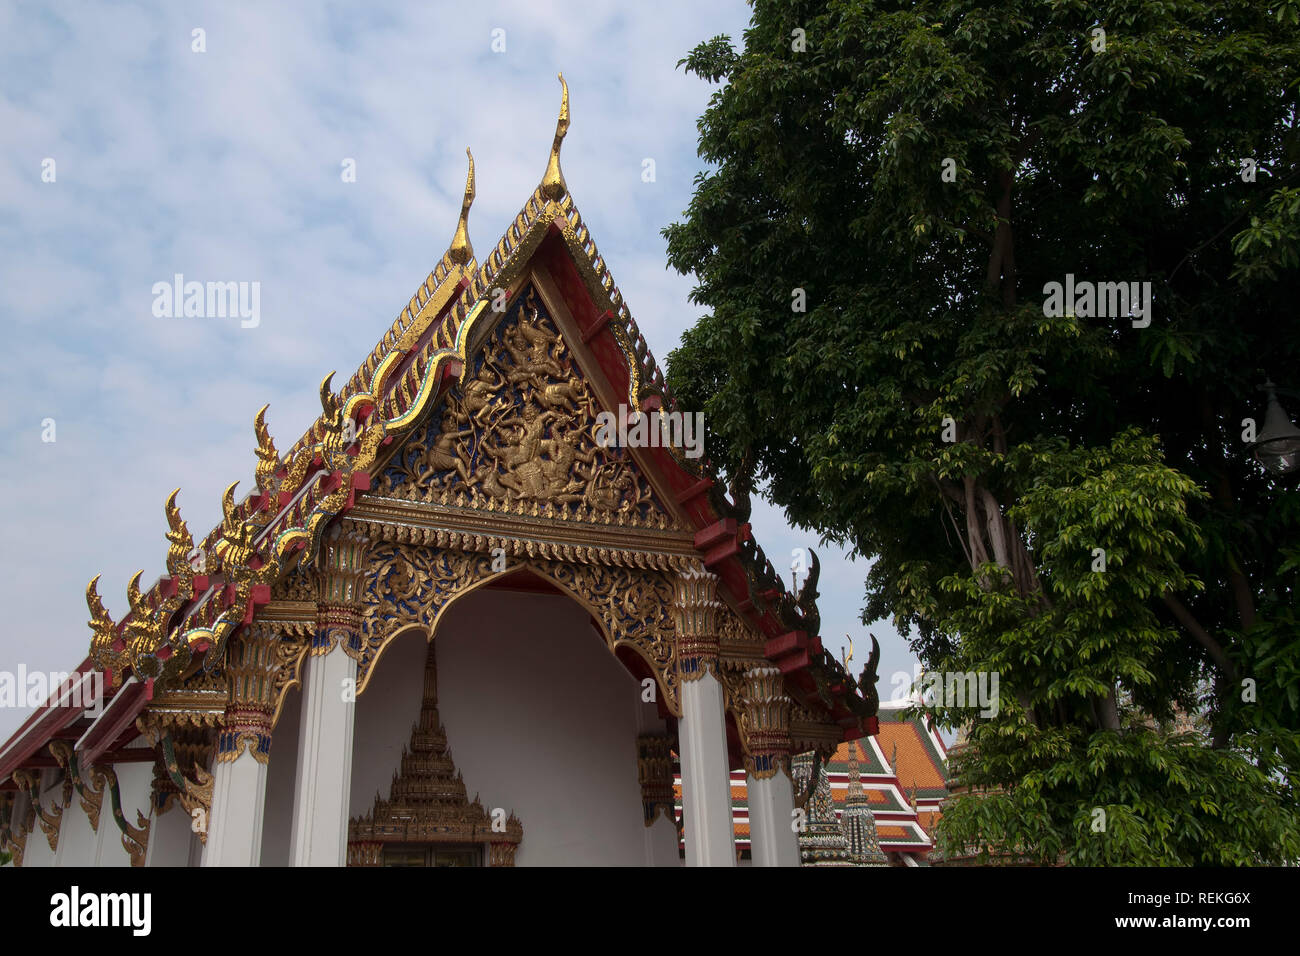 Bangkok Thailand, thai temple with ornate pediment and roof at Wat Pho - Stock Image